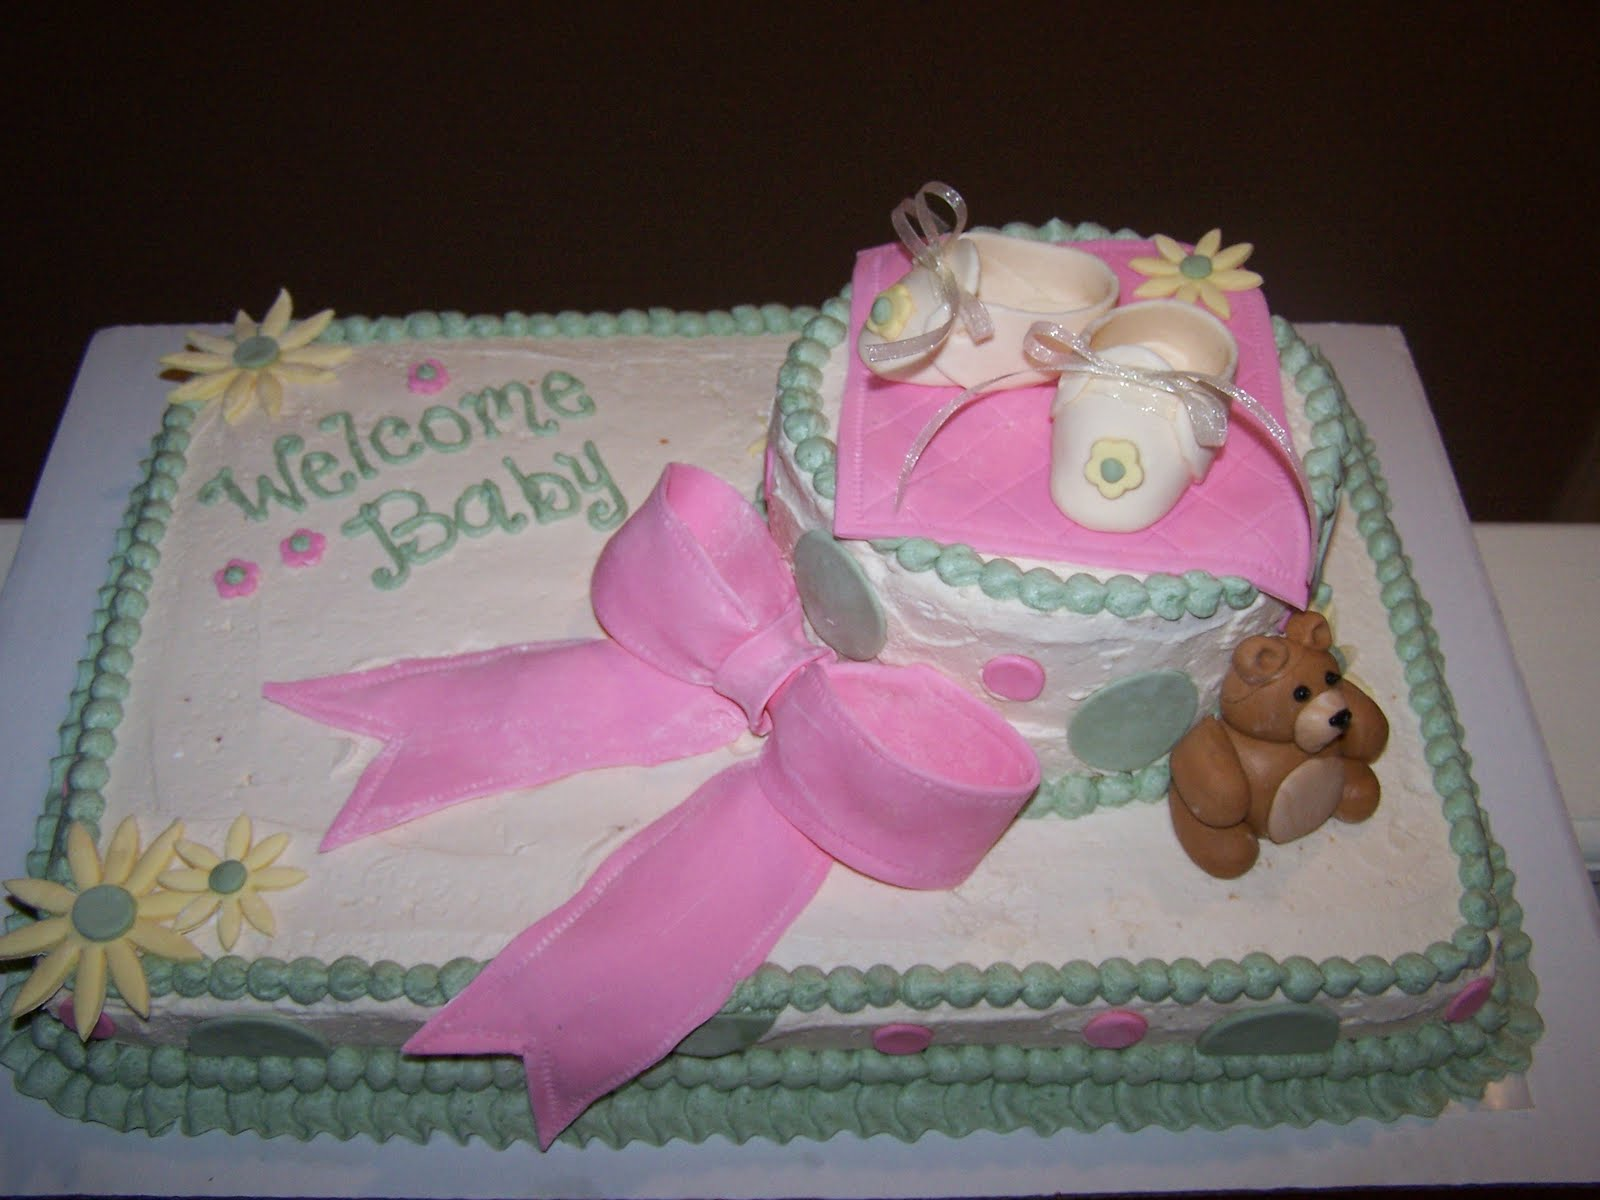 Cake Flavor Ideas For Baby Shower : Living Room Decorating Ideas: Baby Shower Sheet Cake ...